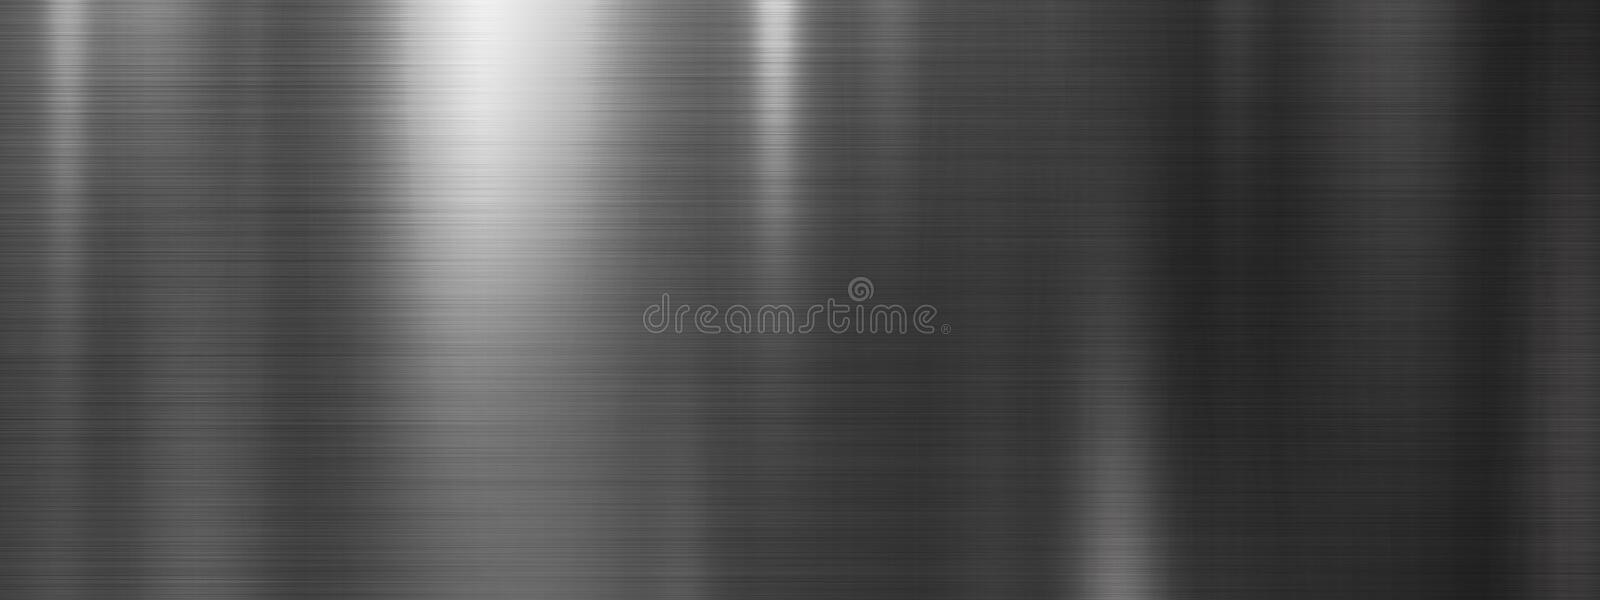 Black metal texture background design royalty free stock image